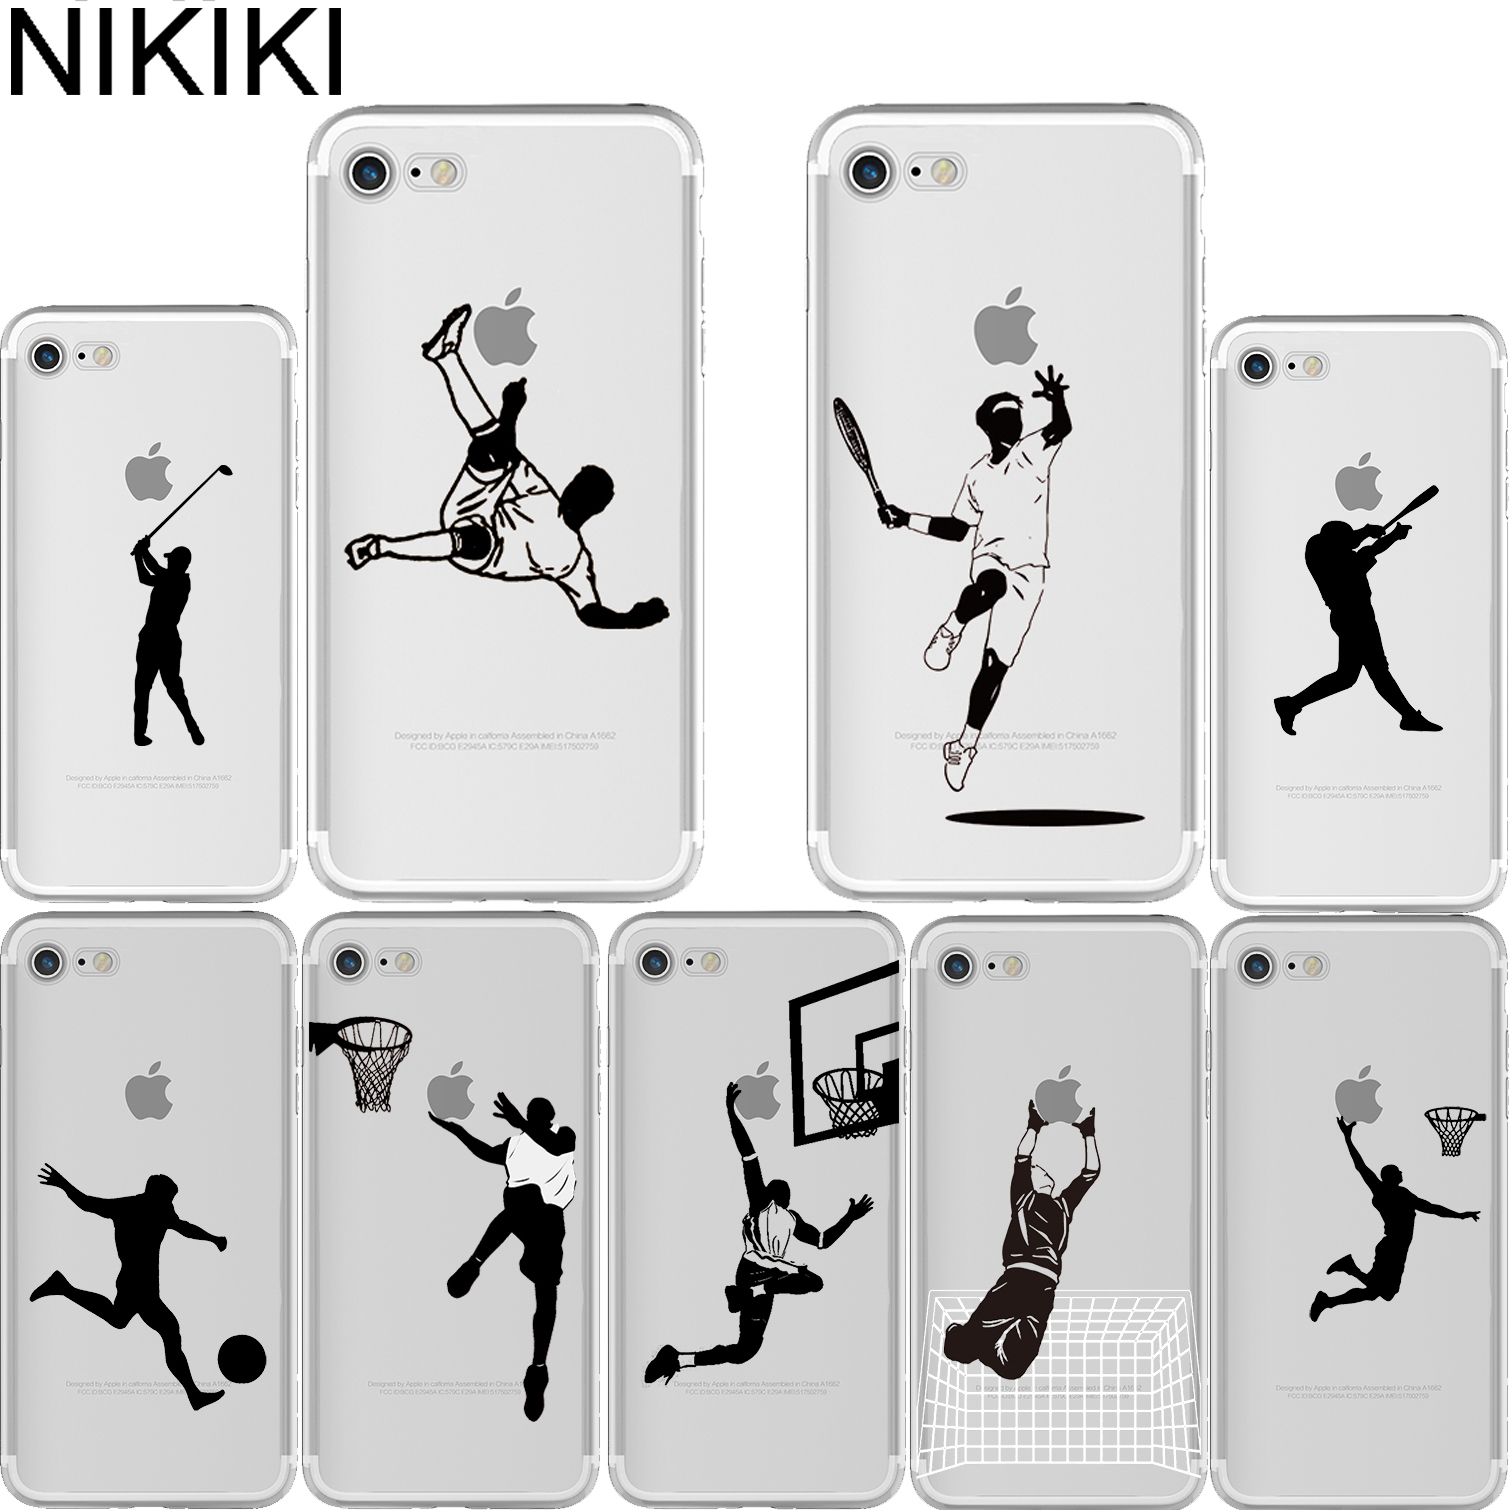 NIKIKI Baseball Football Tennis Golf Sports Athlete Silhouette Soft Silicone Phone Cases Cover for Iphone 6 6S 7 8 Plus 5S SE X